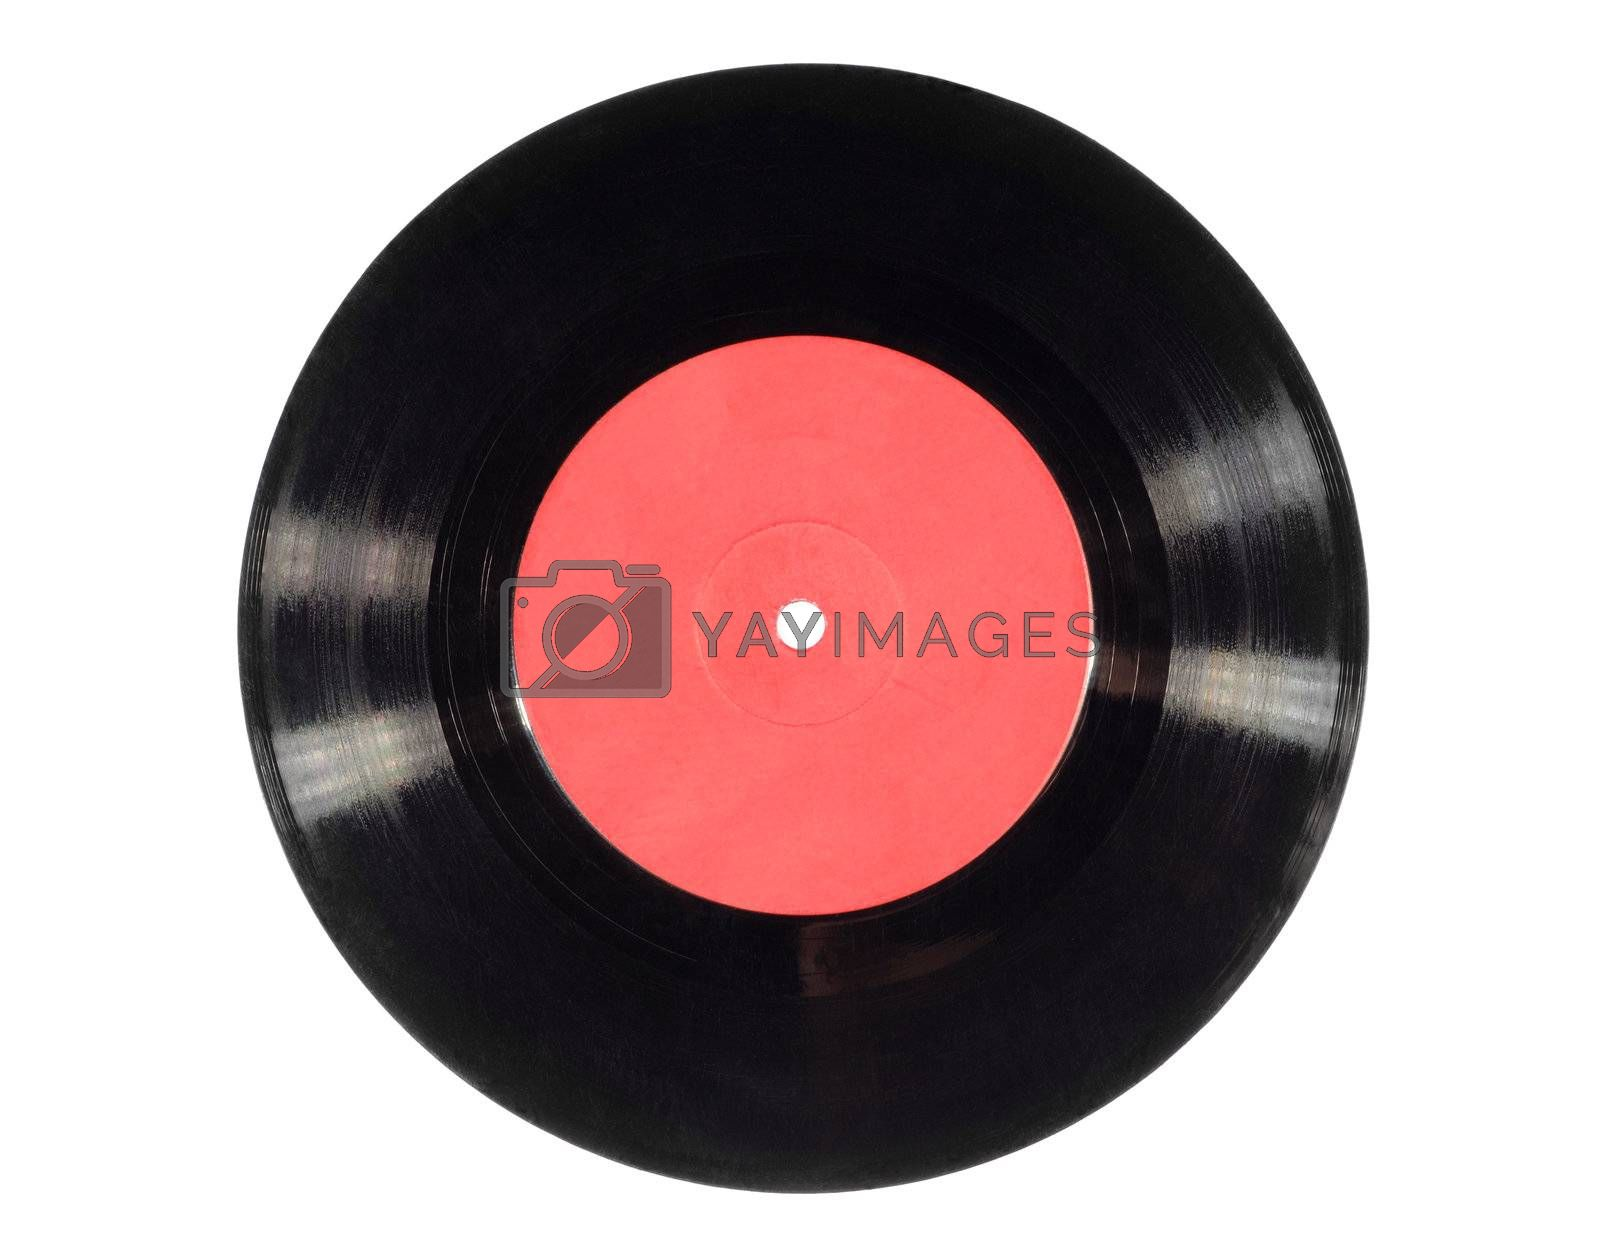 Old vinyl record (single) isolated on white